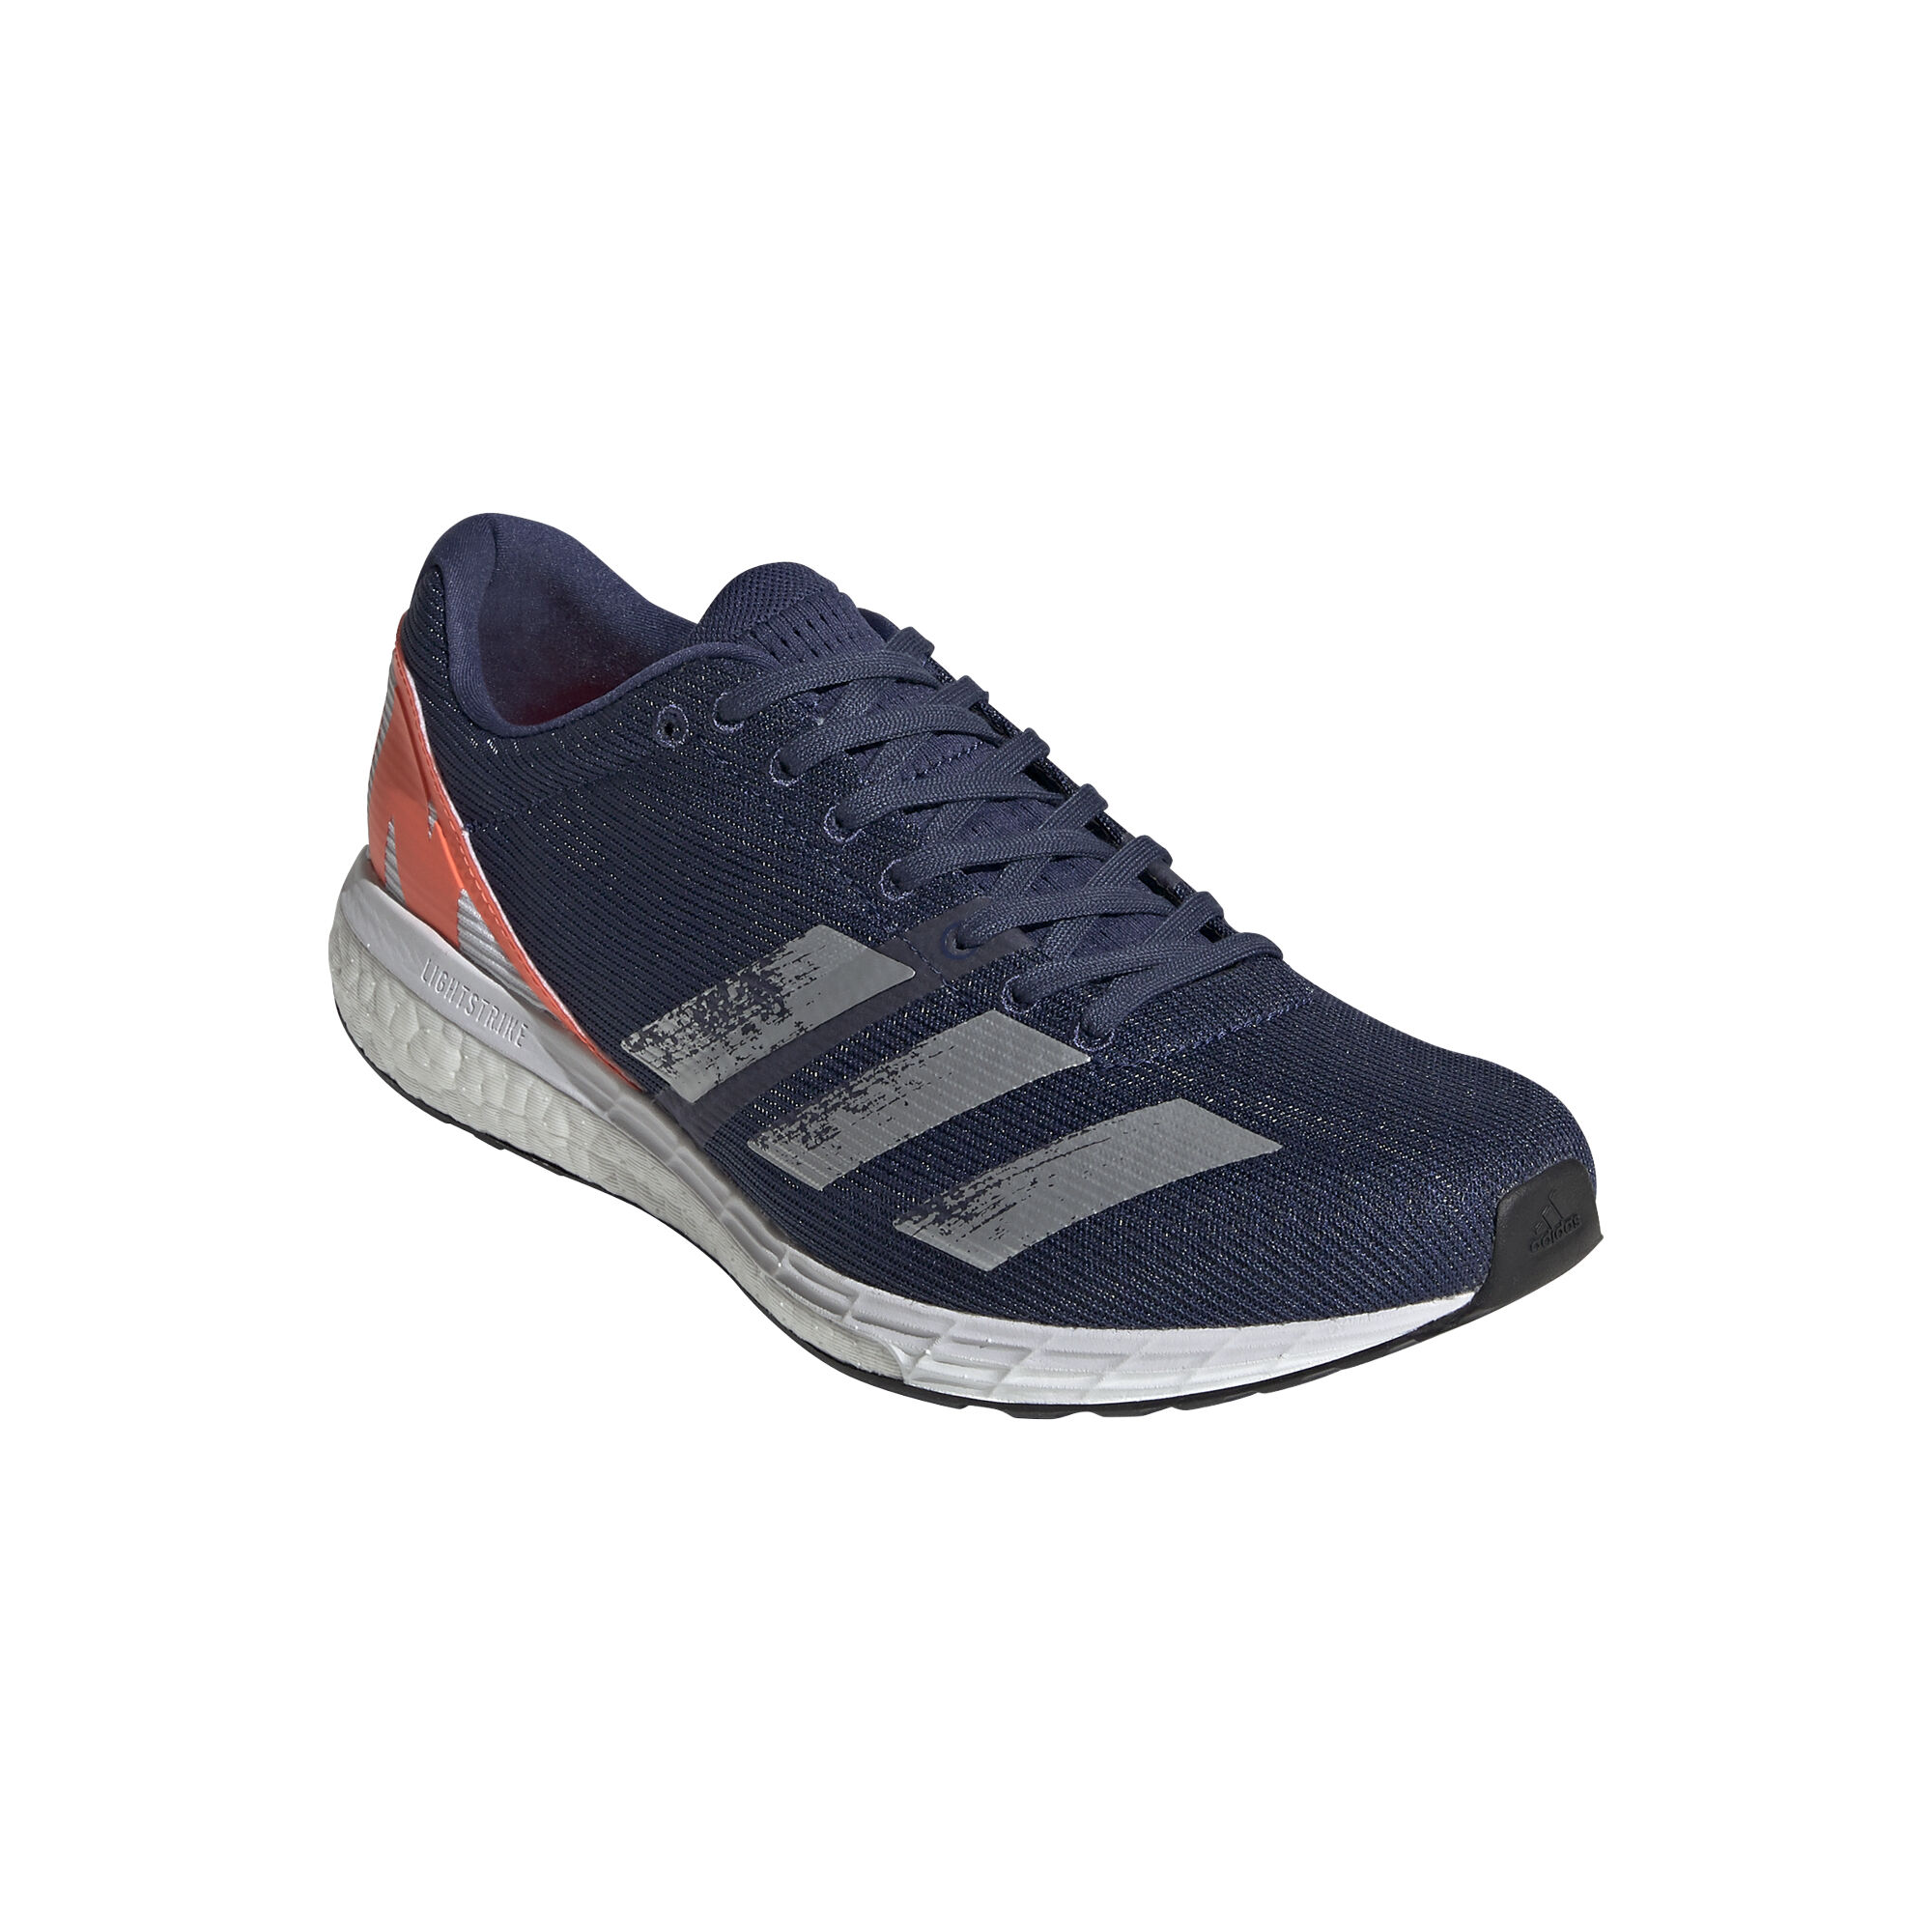 adidas adizero boston 8 tech indigo